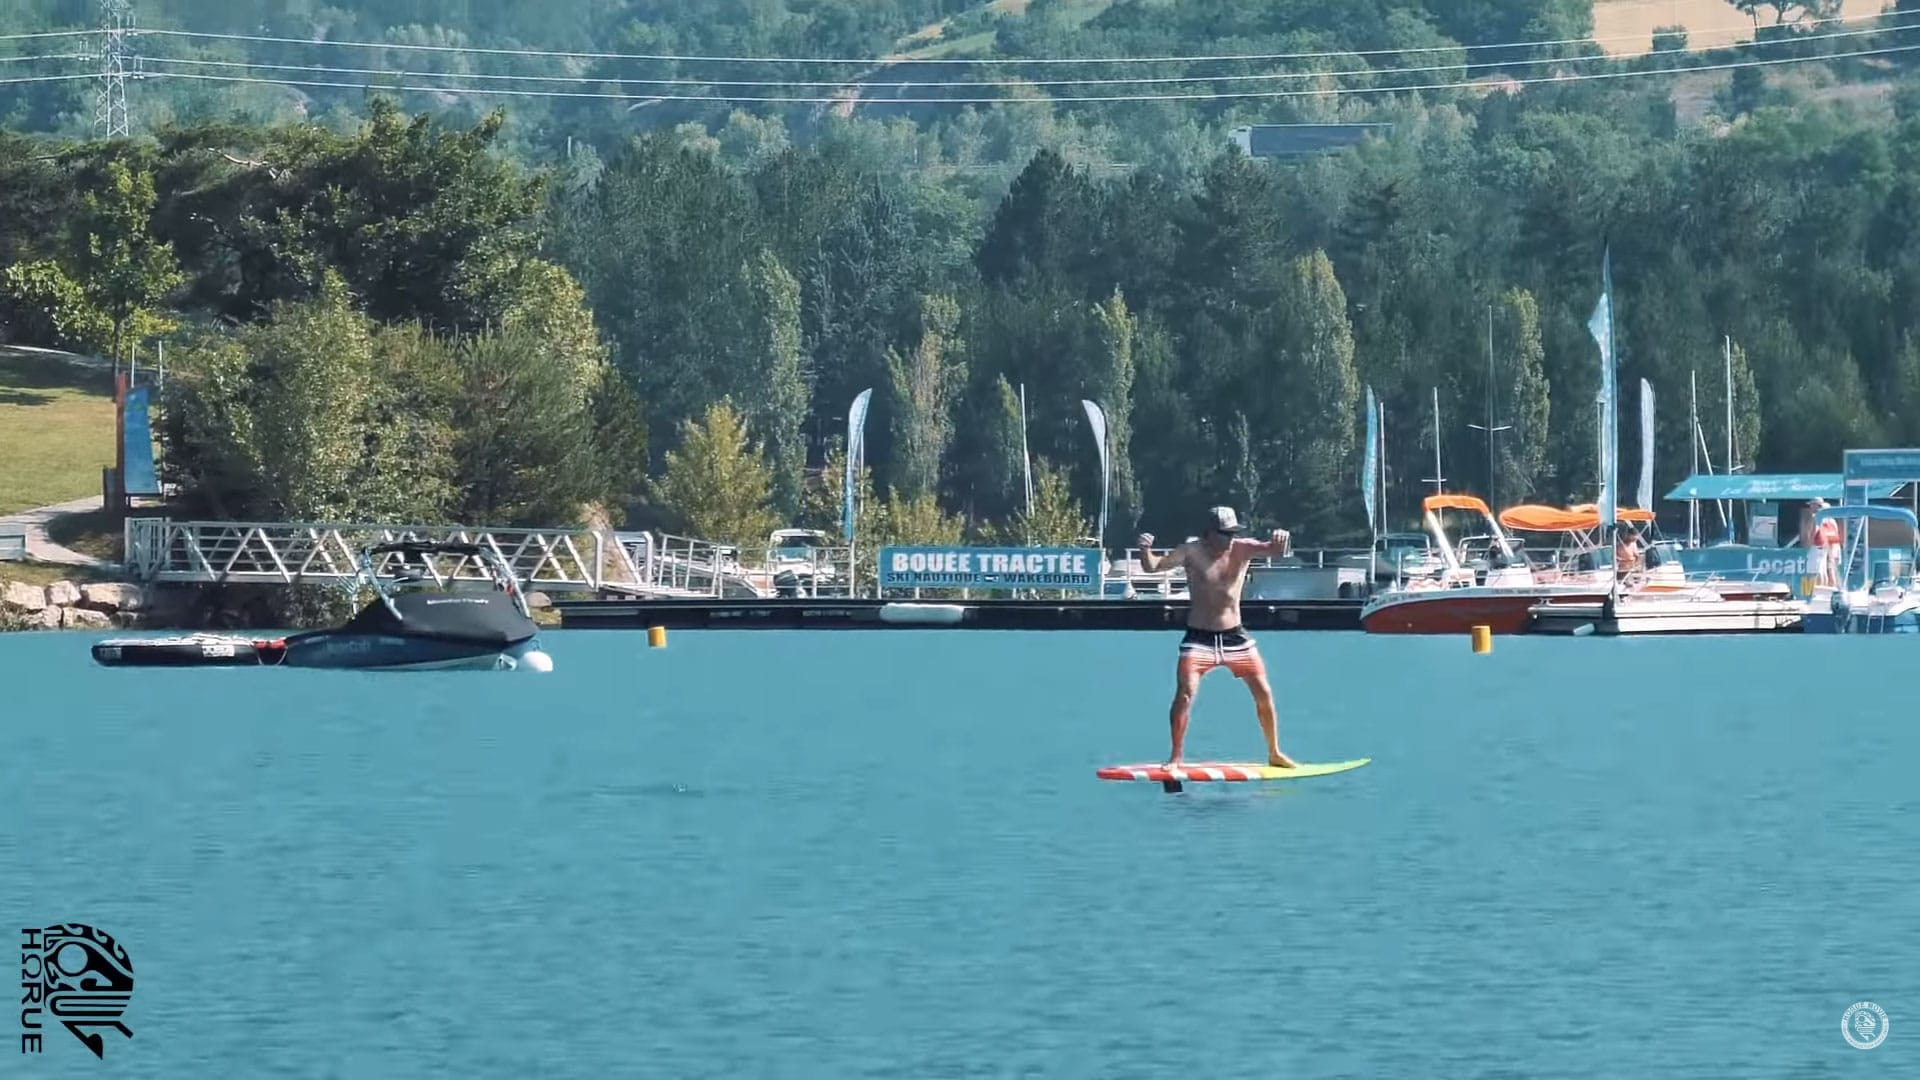 Vidéo Foil surfing on flat water and hydrofoil pumping par Horue